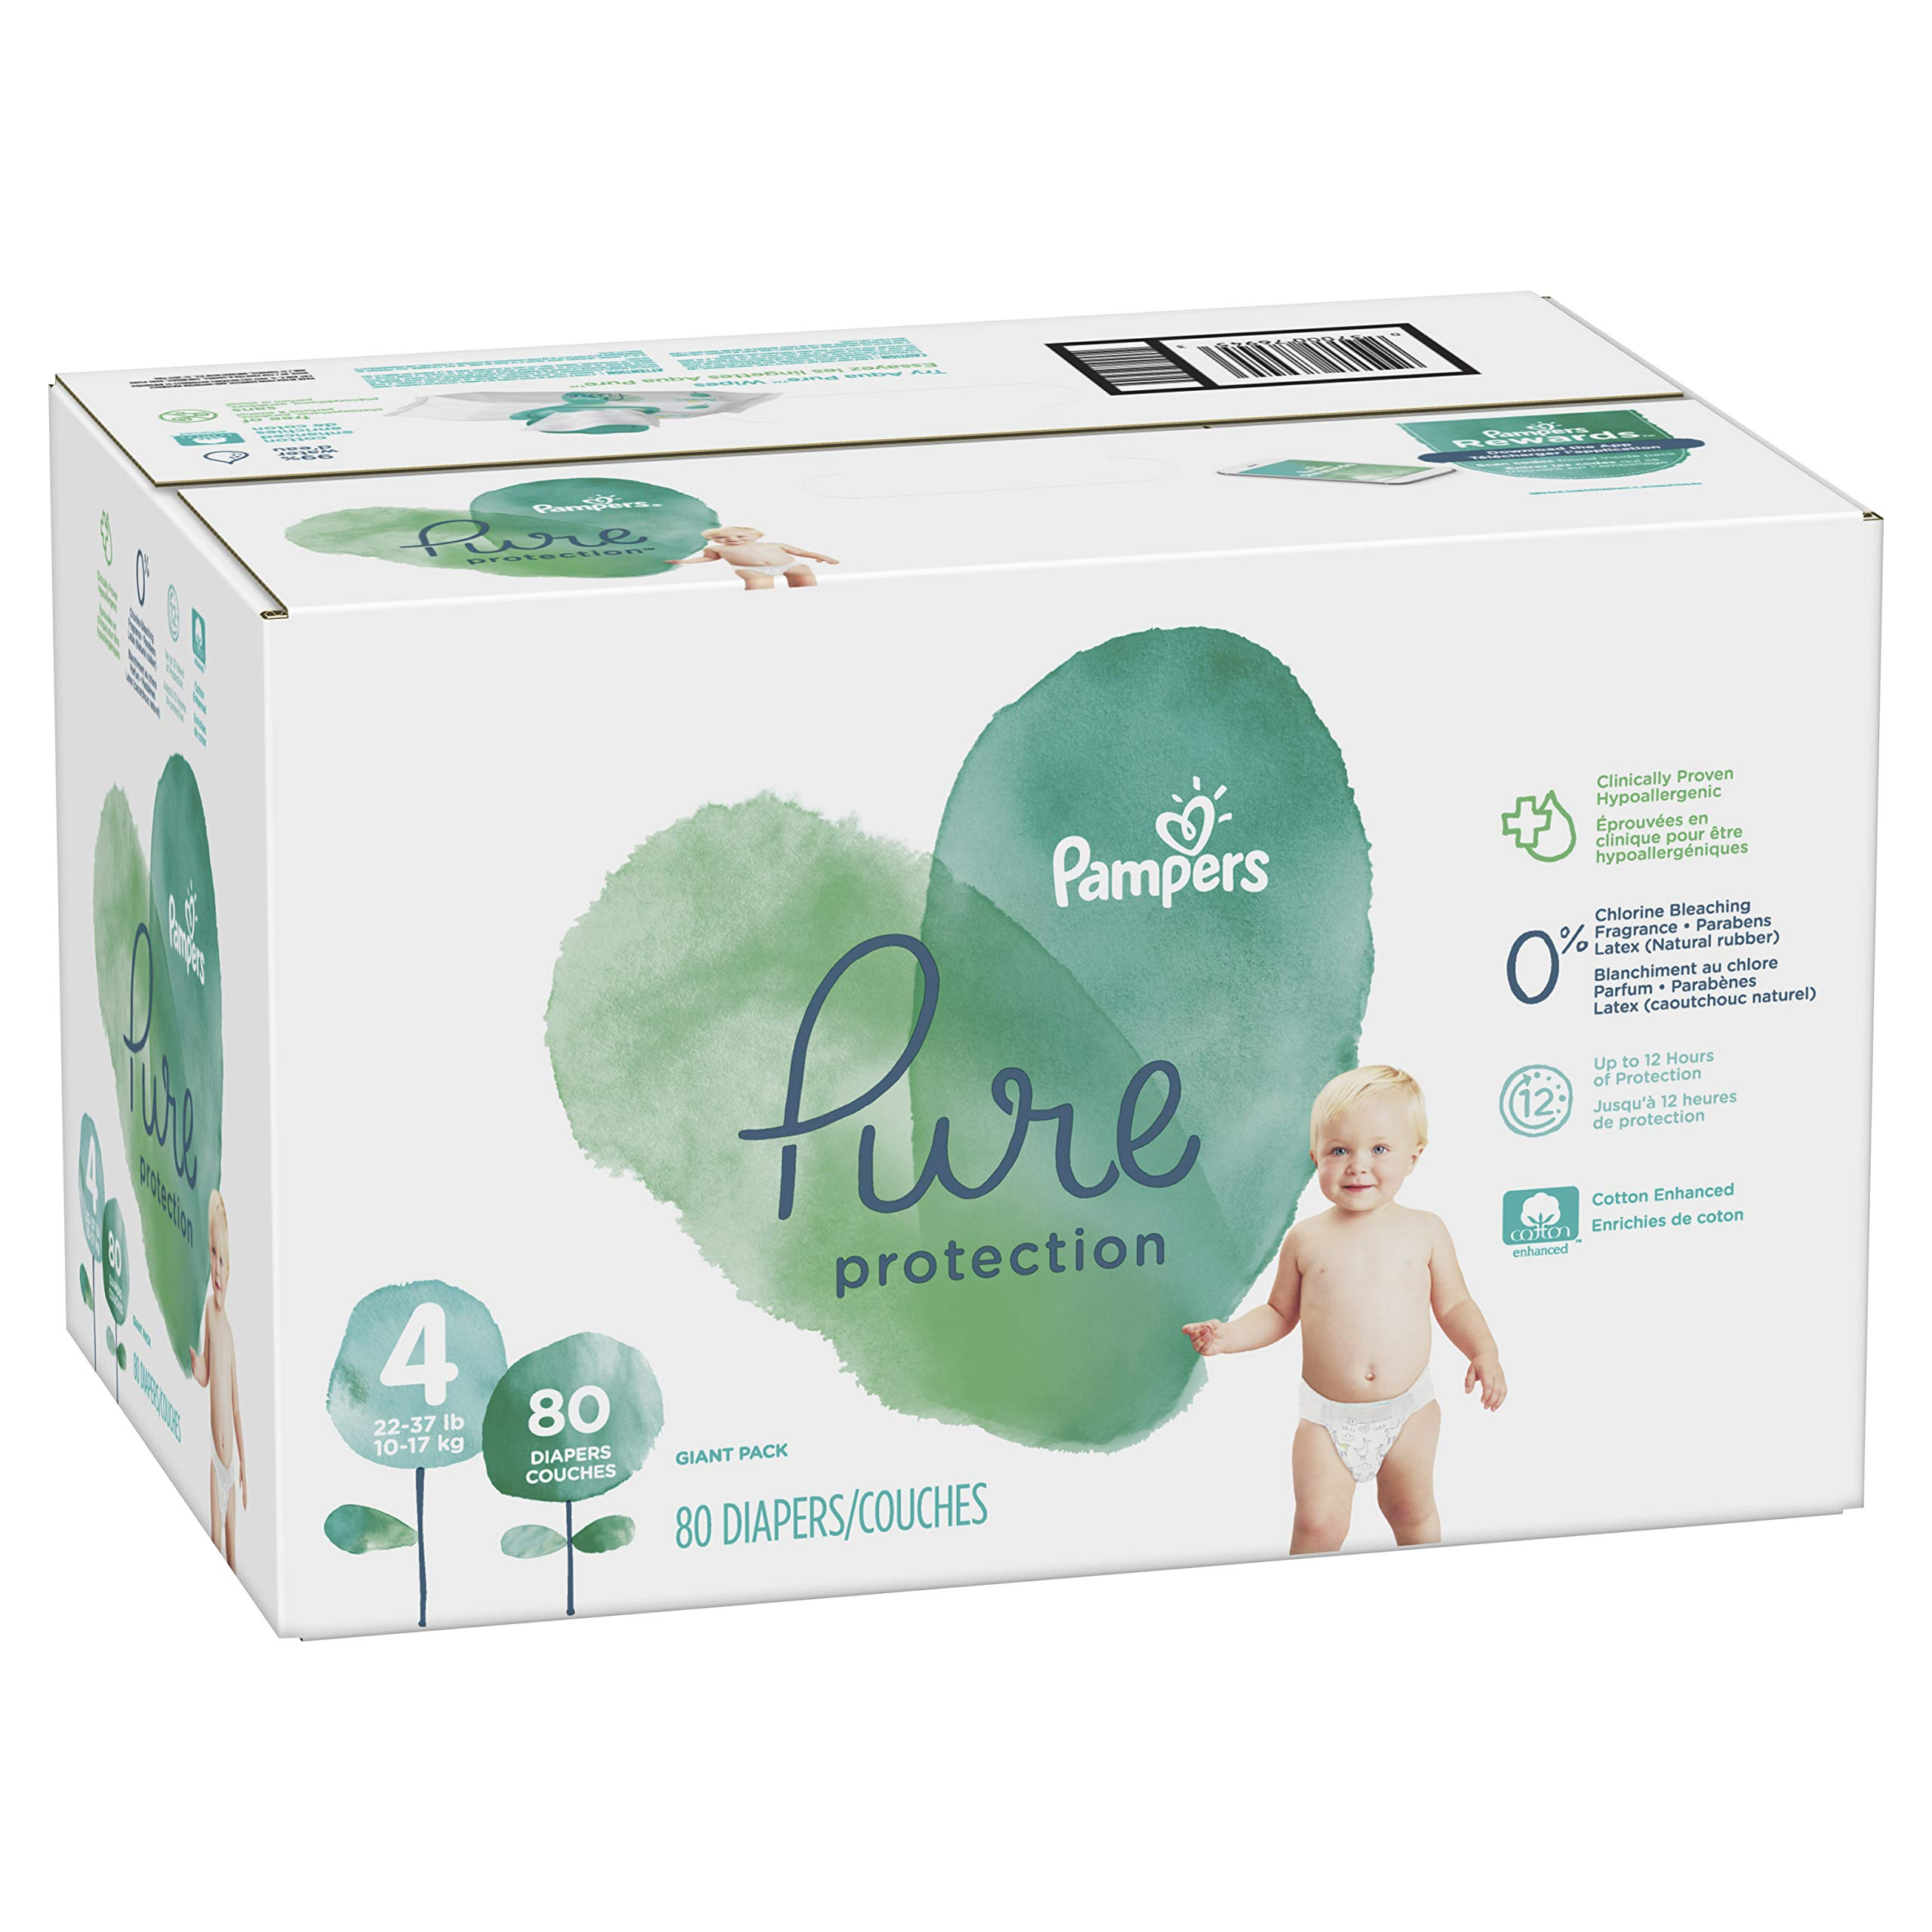 Diapers Size 4, 80 Count - Pampers Pure Disposable Baby Diapers, Hypoallergenic and Unscented Protection, Giant Pack by Pampers